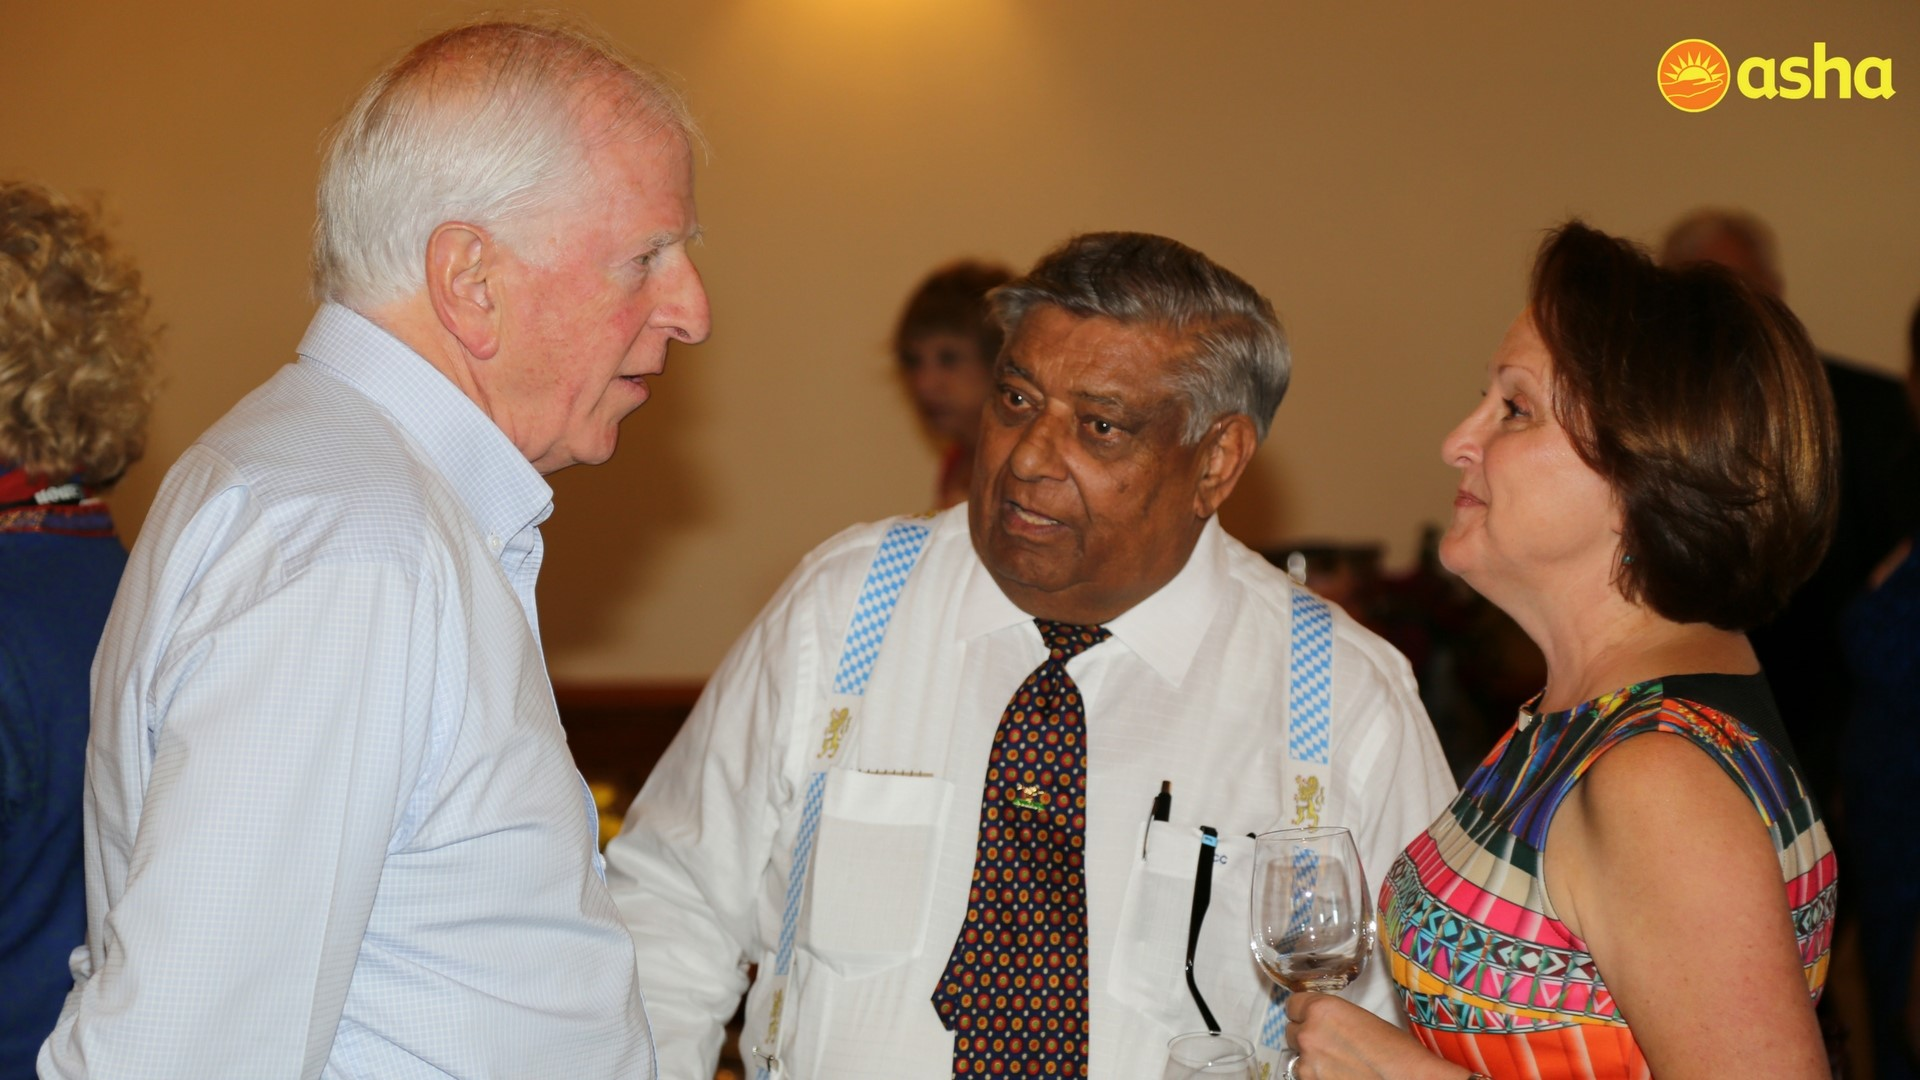 Congressman Mike Thompson, long-time Asha supporter Kailash Chaudhary and co-owner of the Jamieson Ranch, Anna Leigon at the Napa fundraising event.